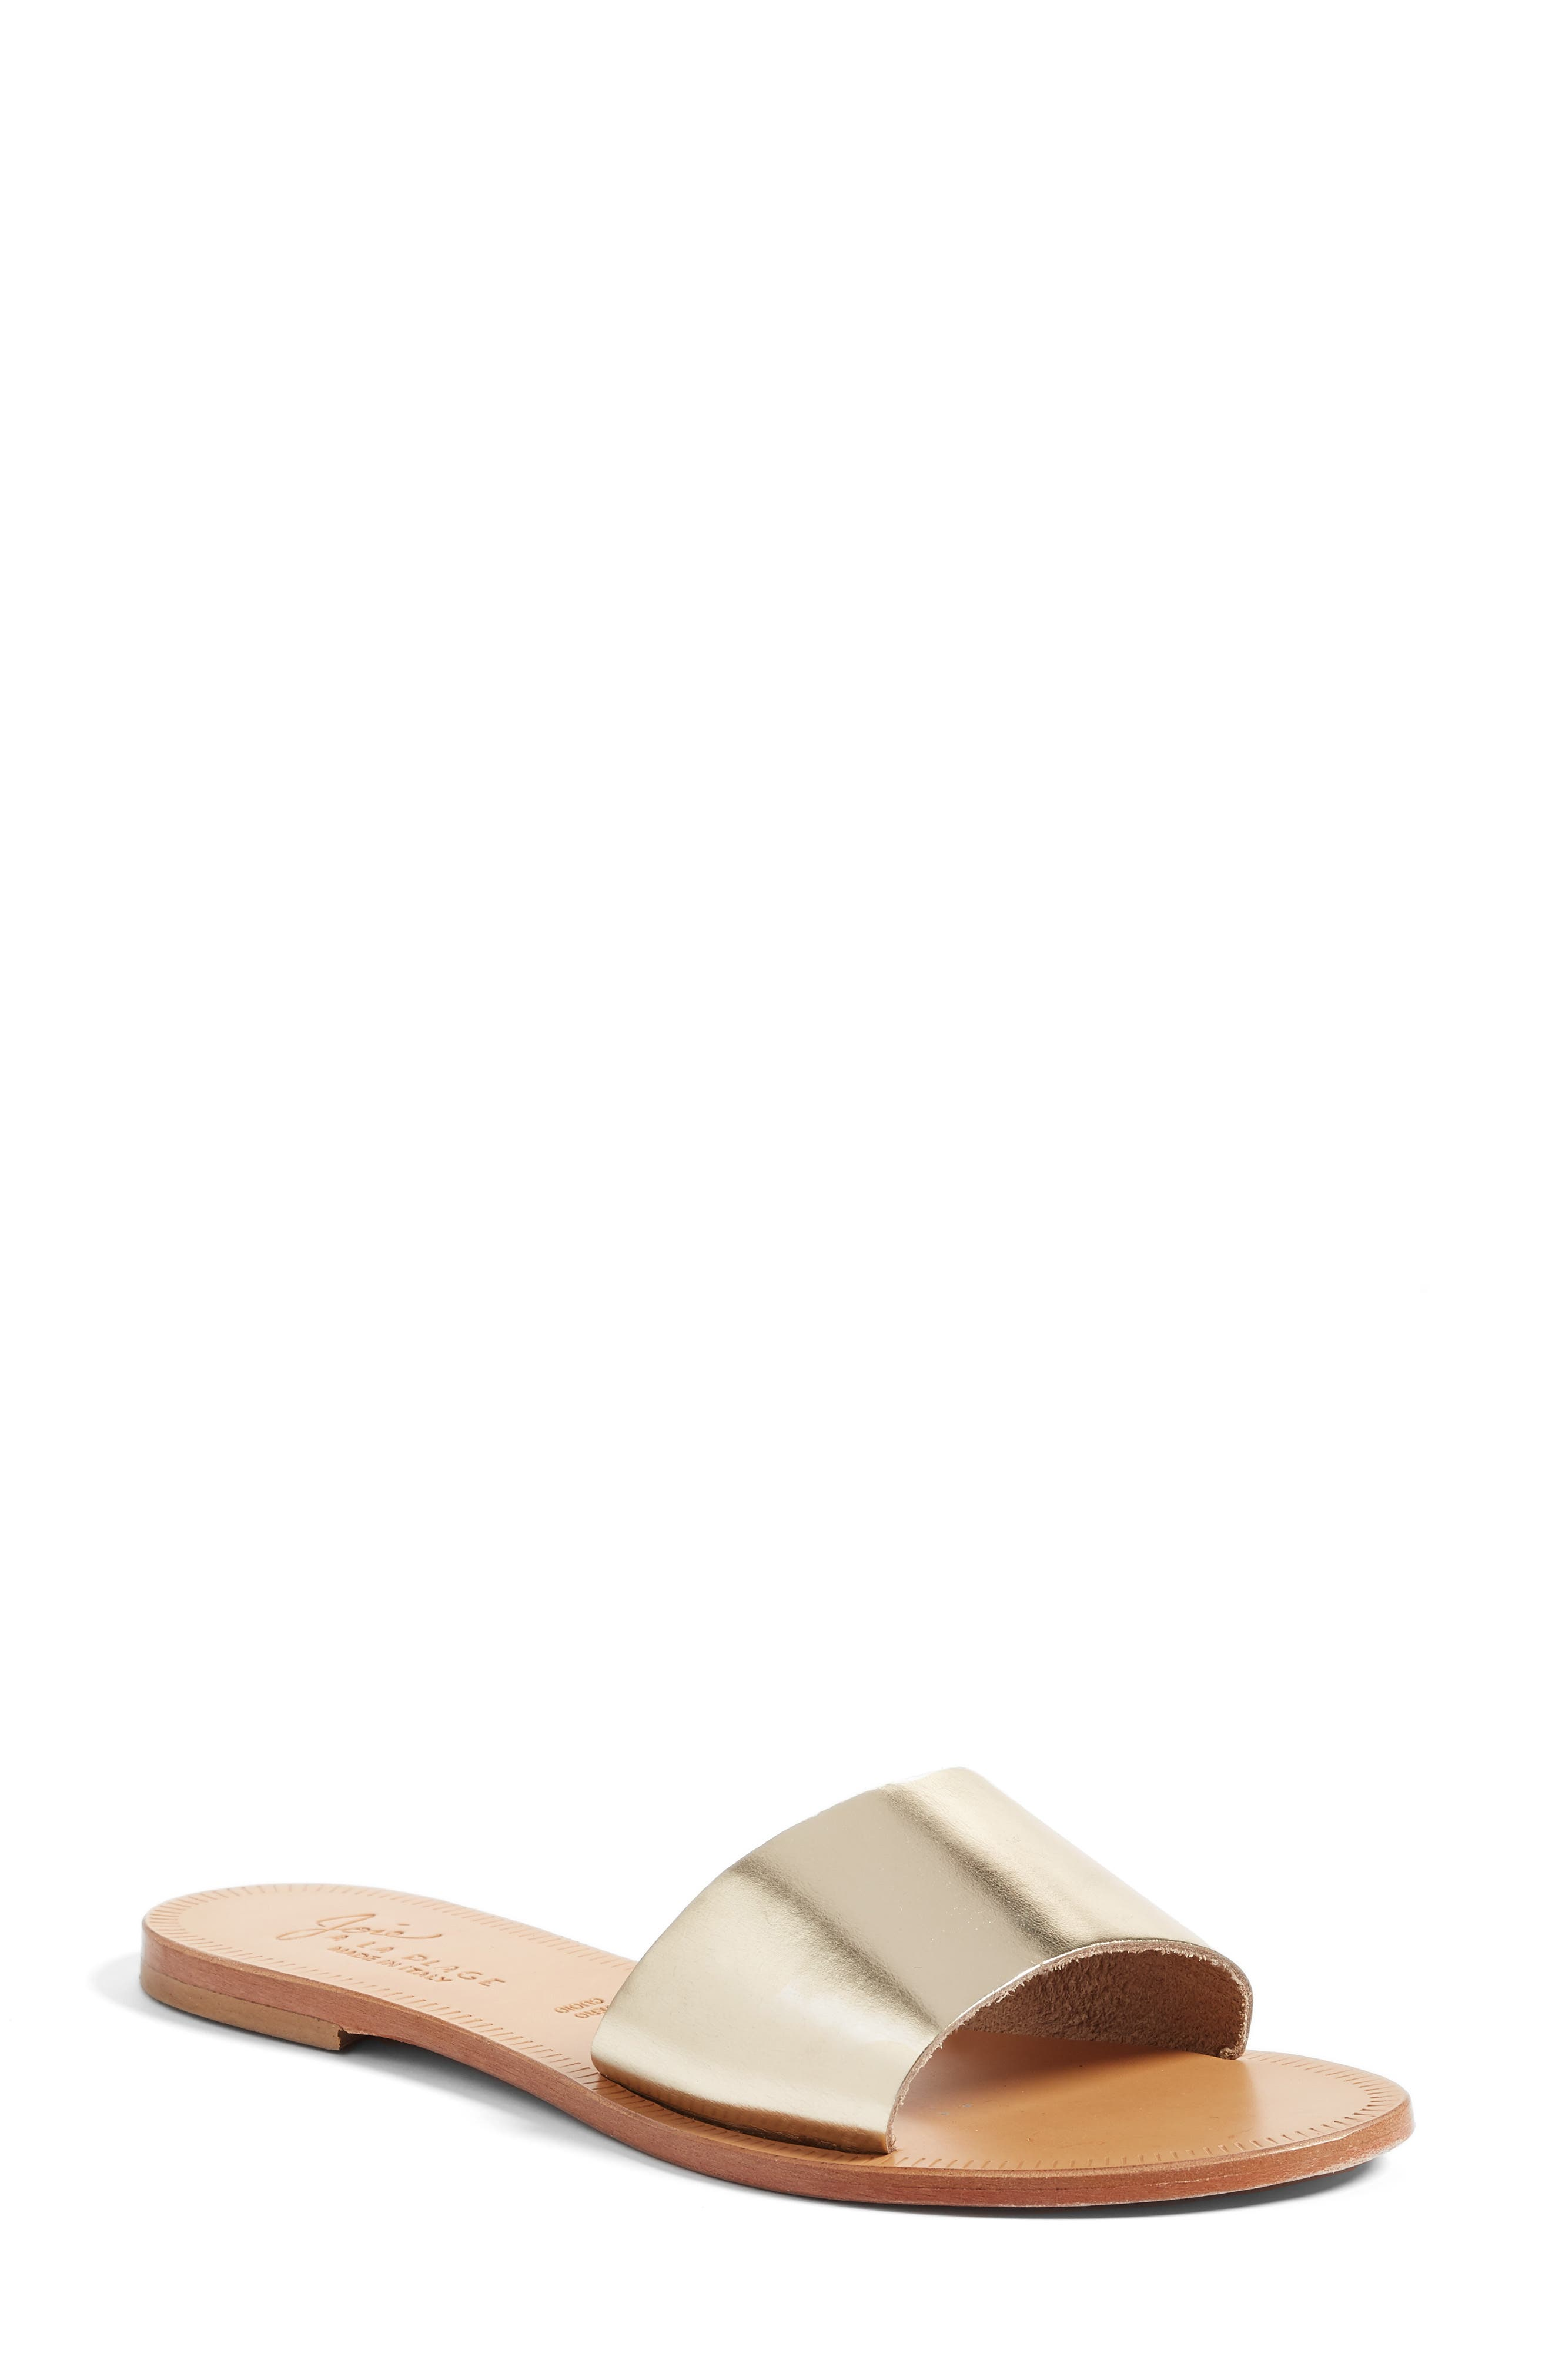 JOIE Lacey Slide Sandal